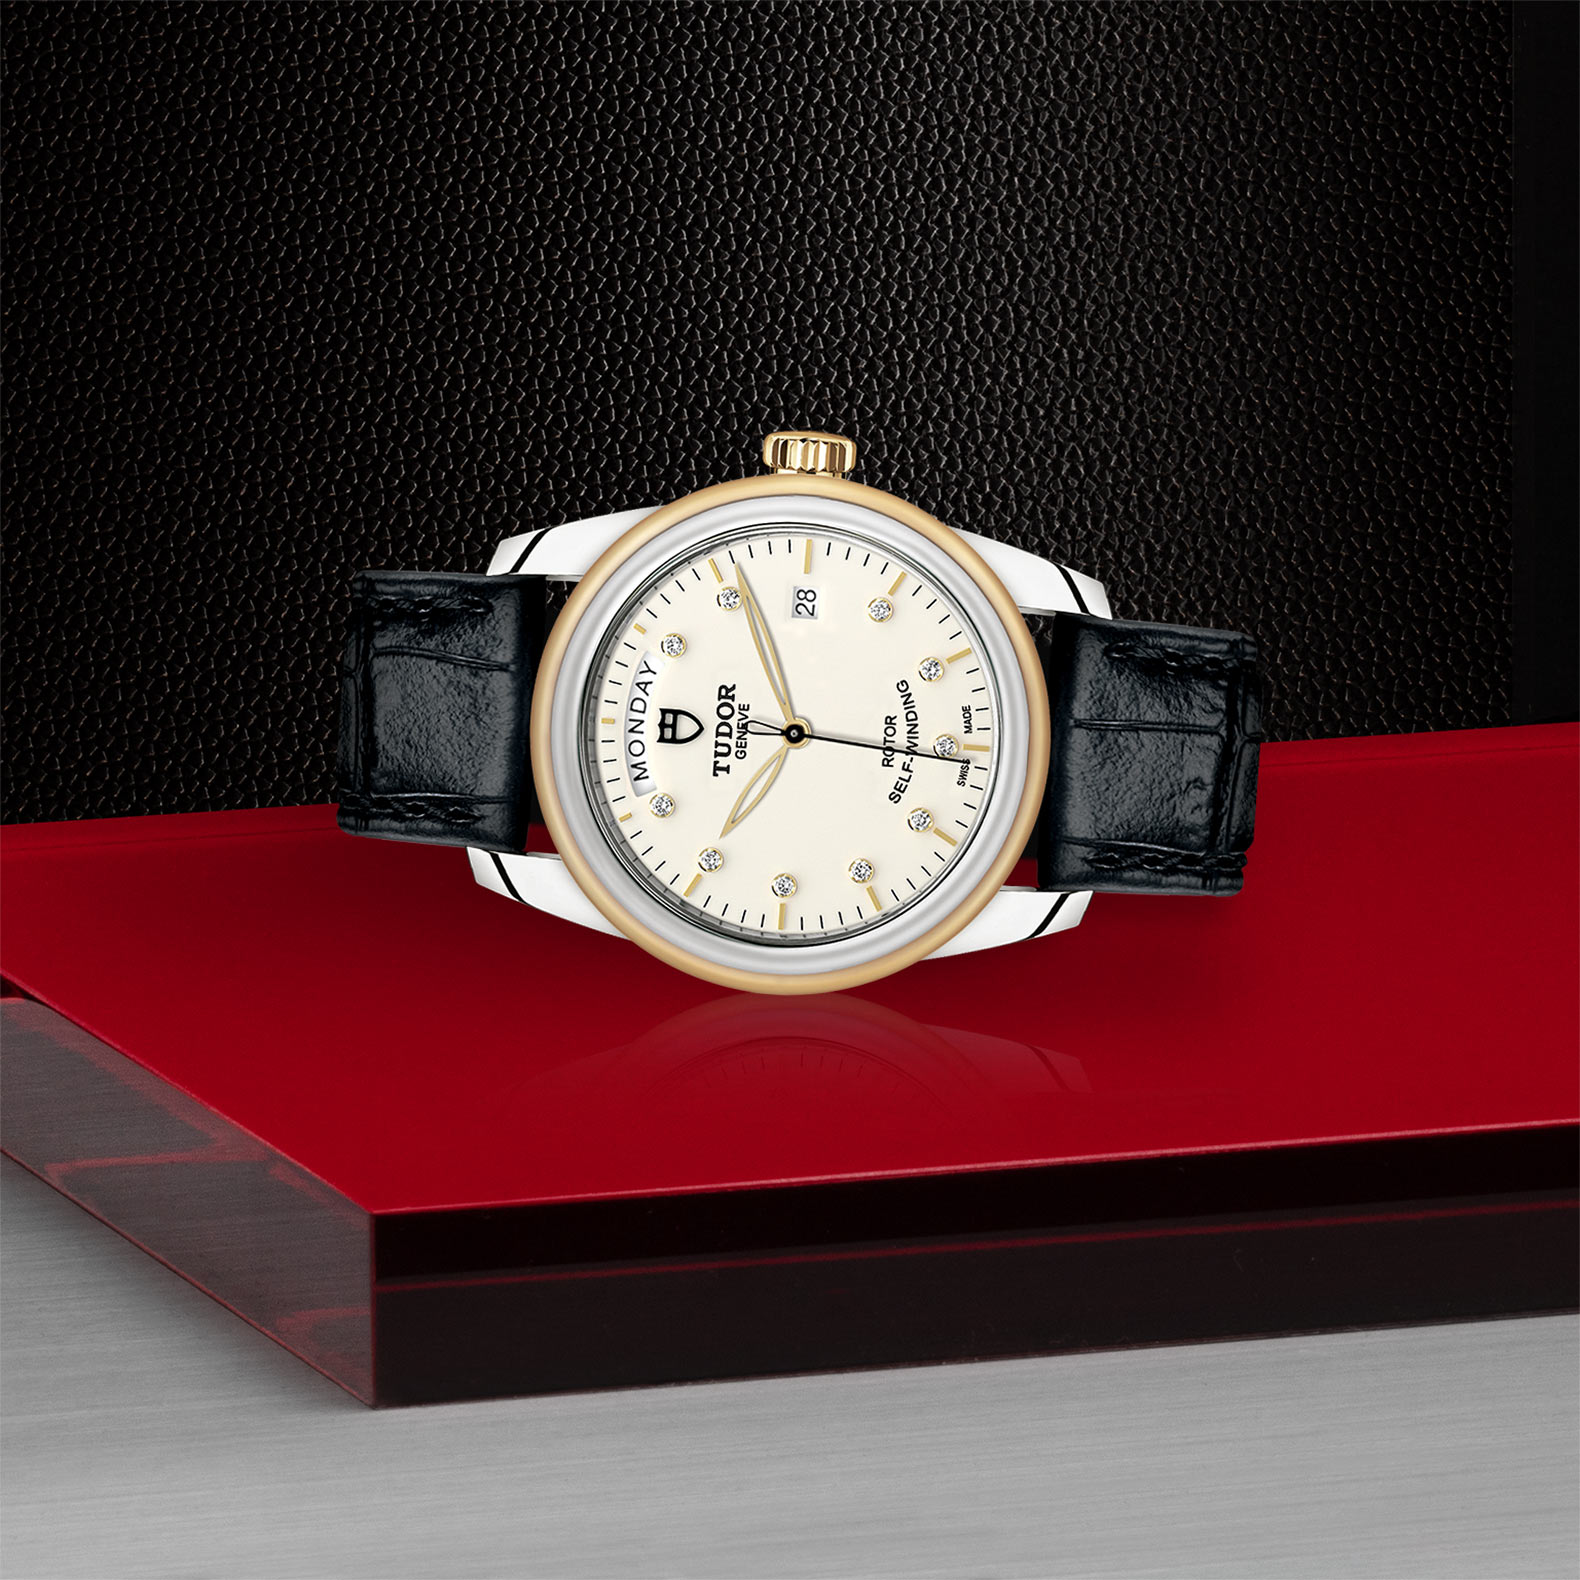 TUDOR Glamour Date+Day - M56003-0115